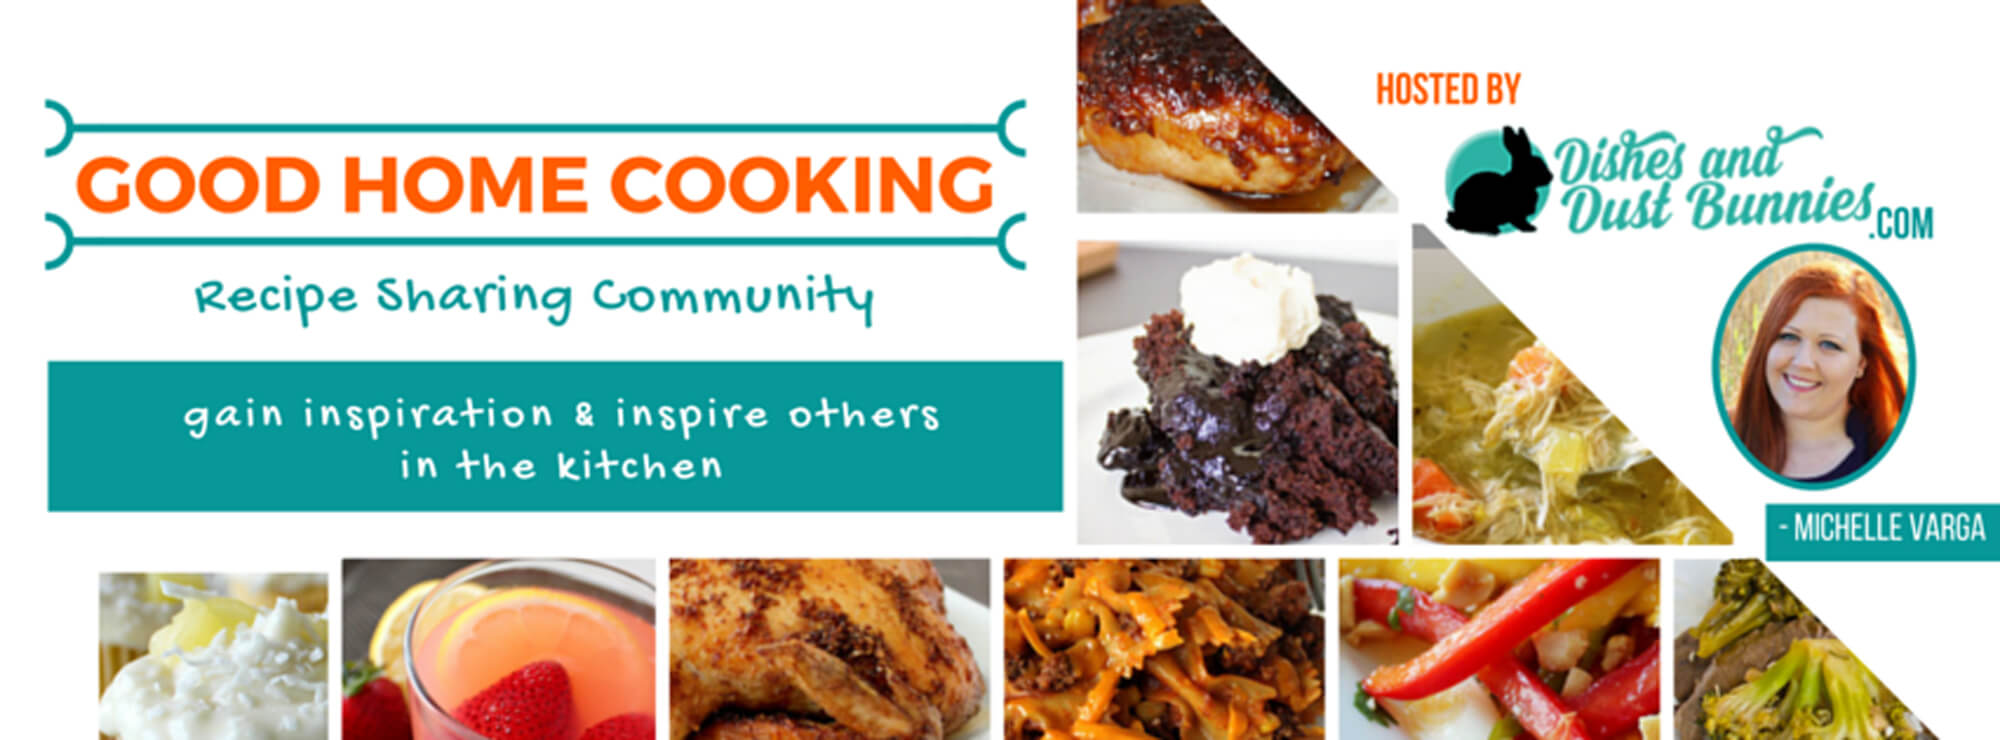 Good Home Cooking - Recipe Sharing Community!